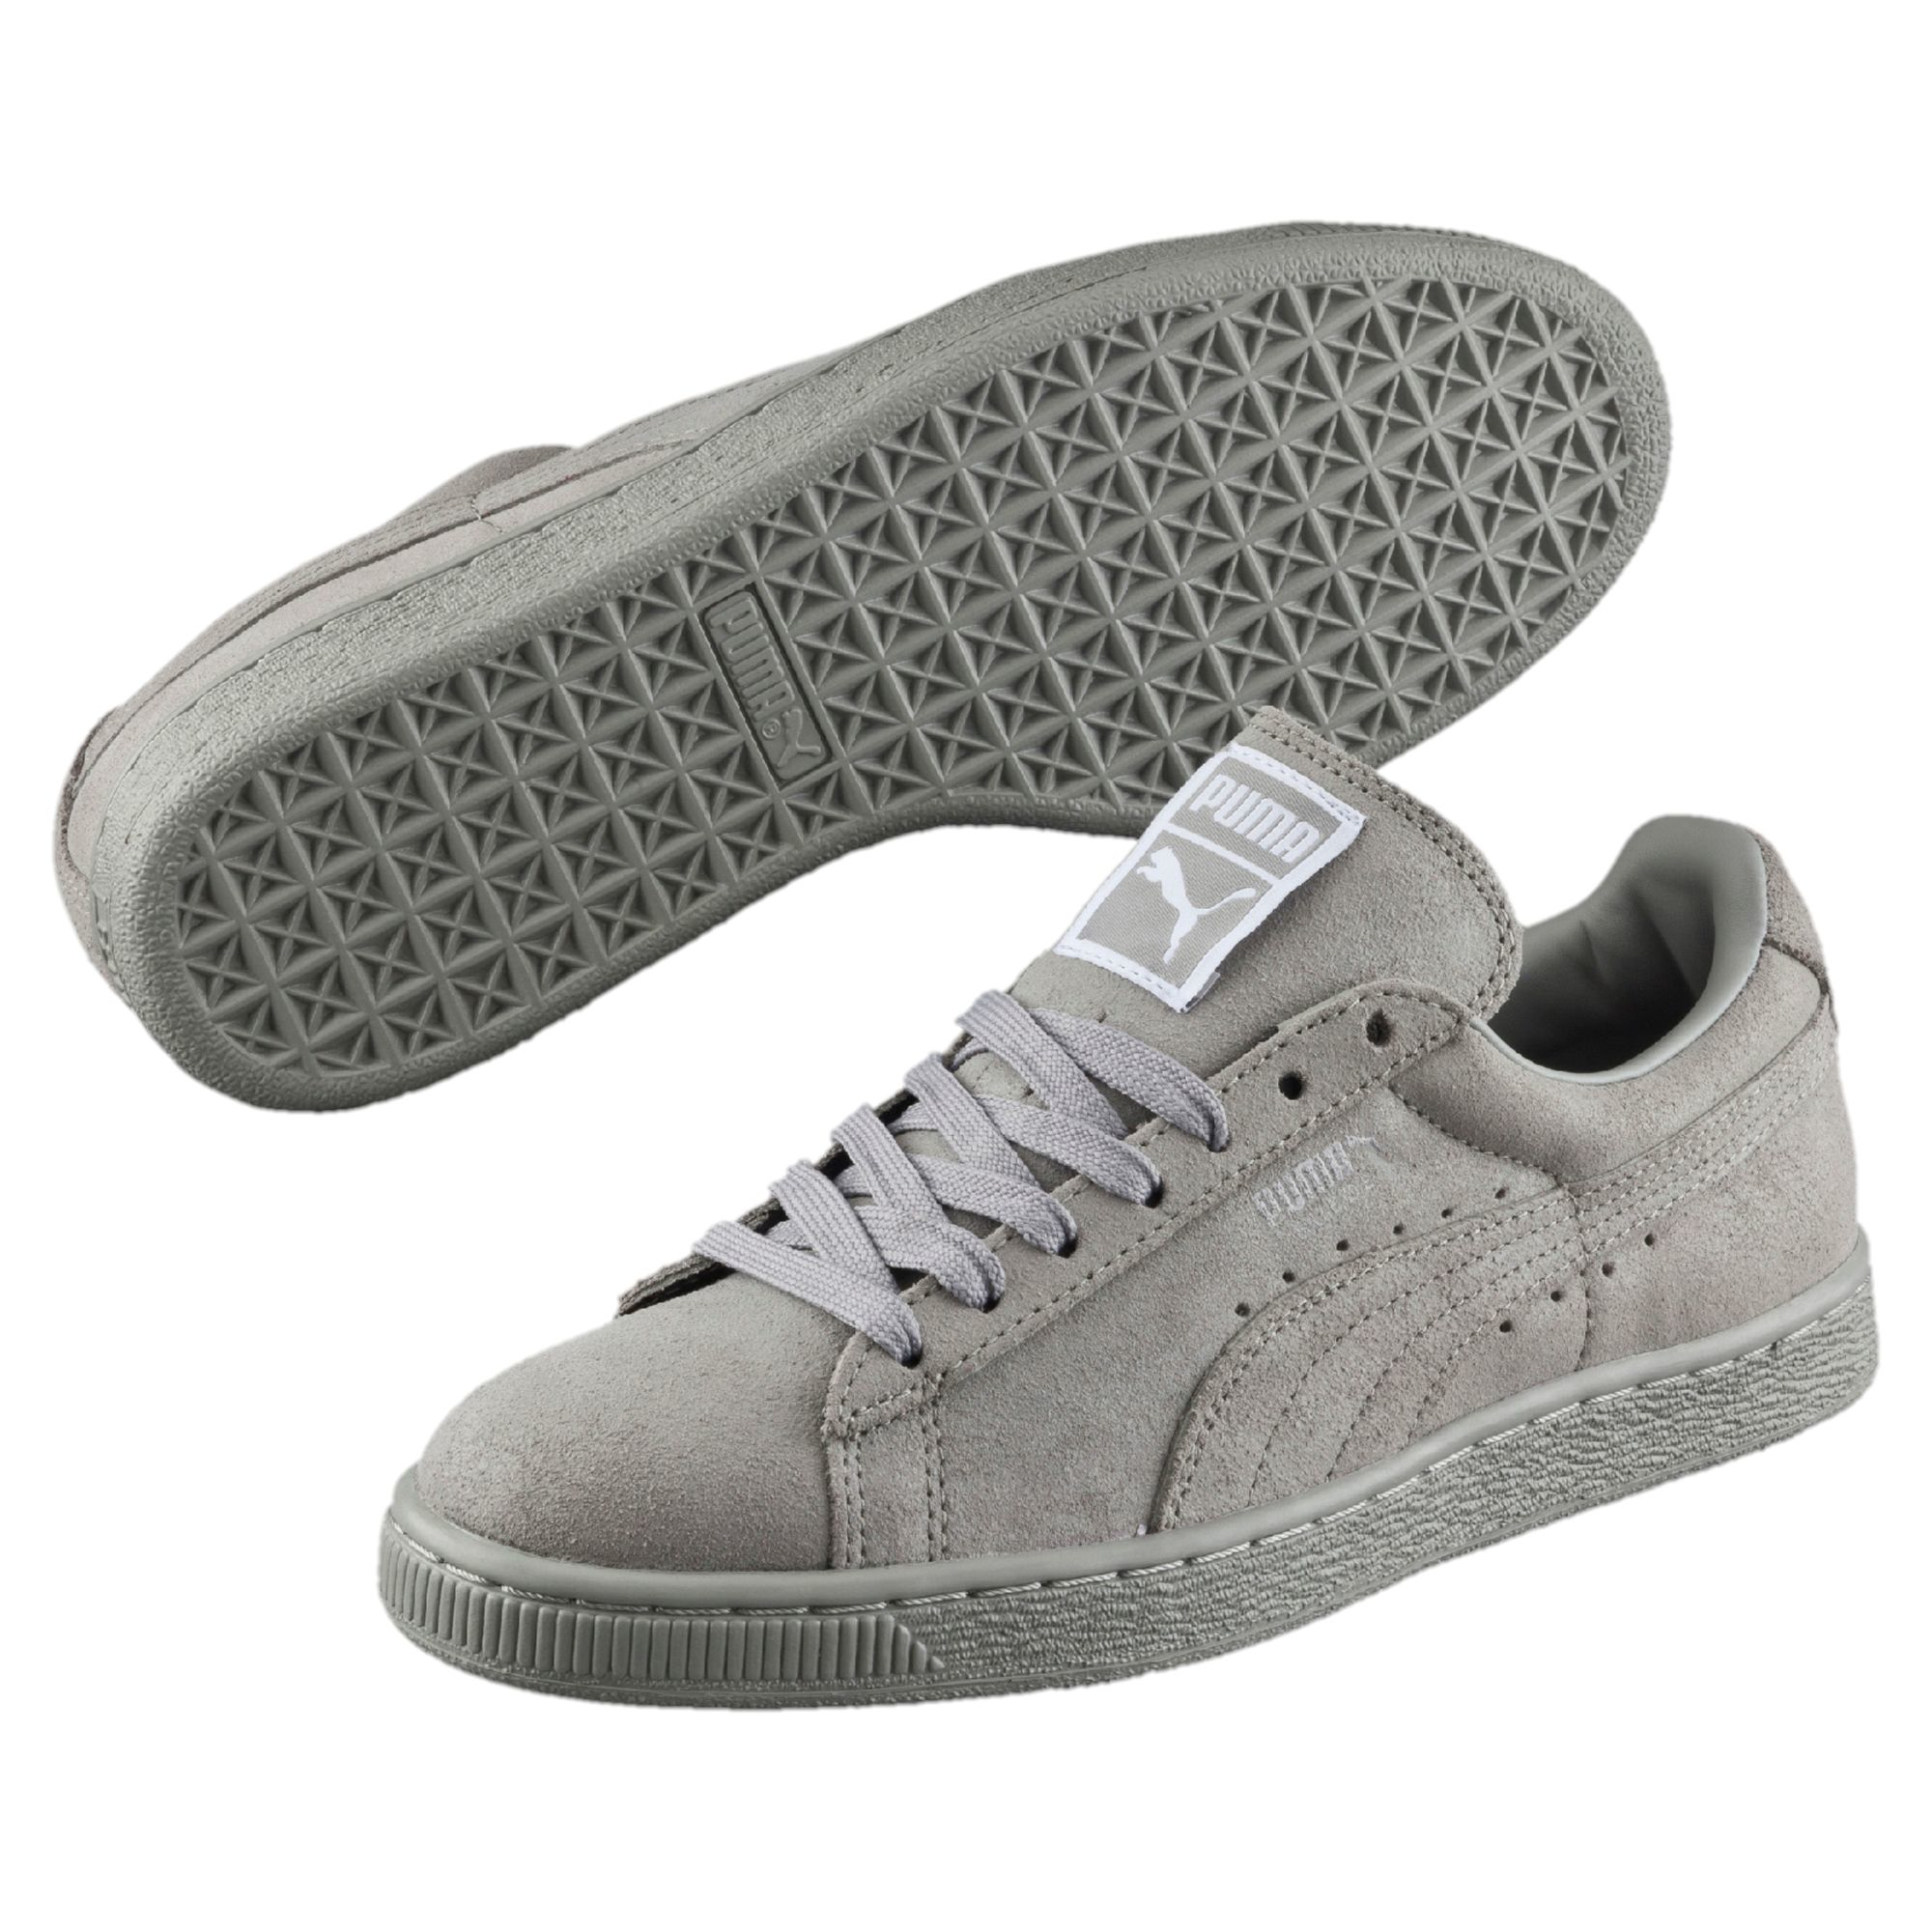 online for sale on sale online 2019 professional Suede Classic Matte & Shine Women's Sneakers